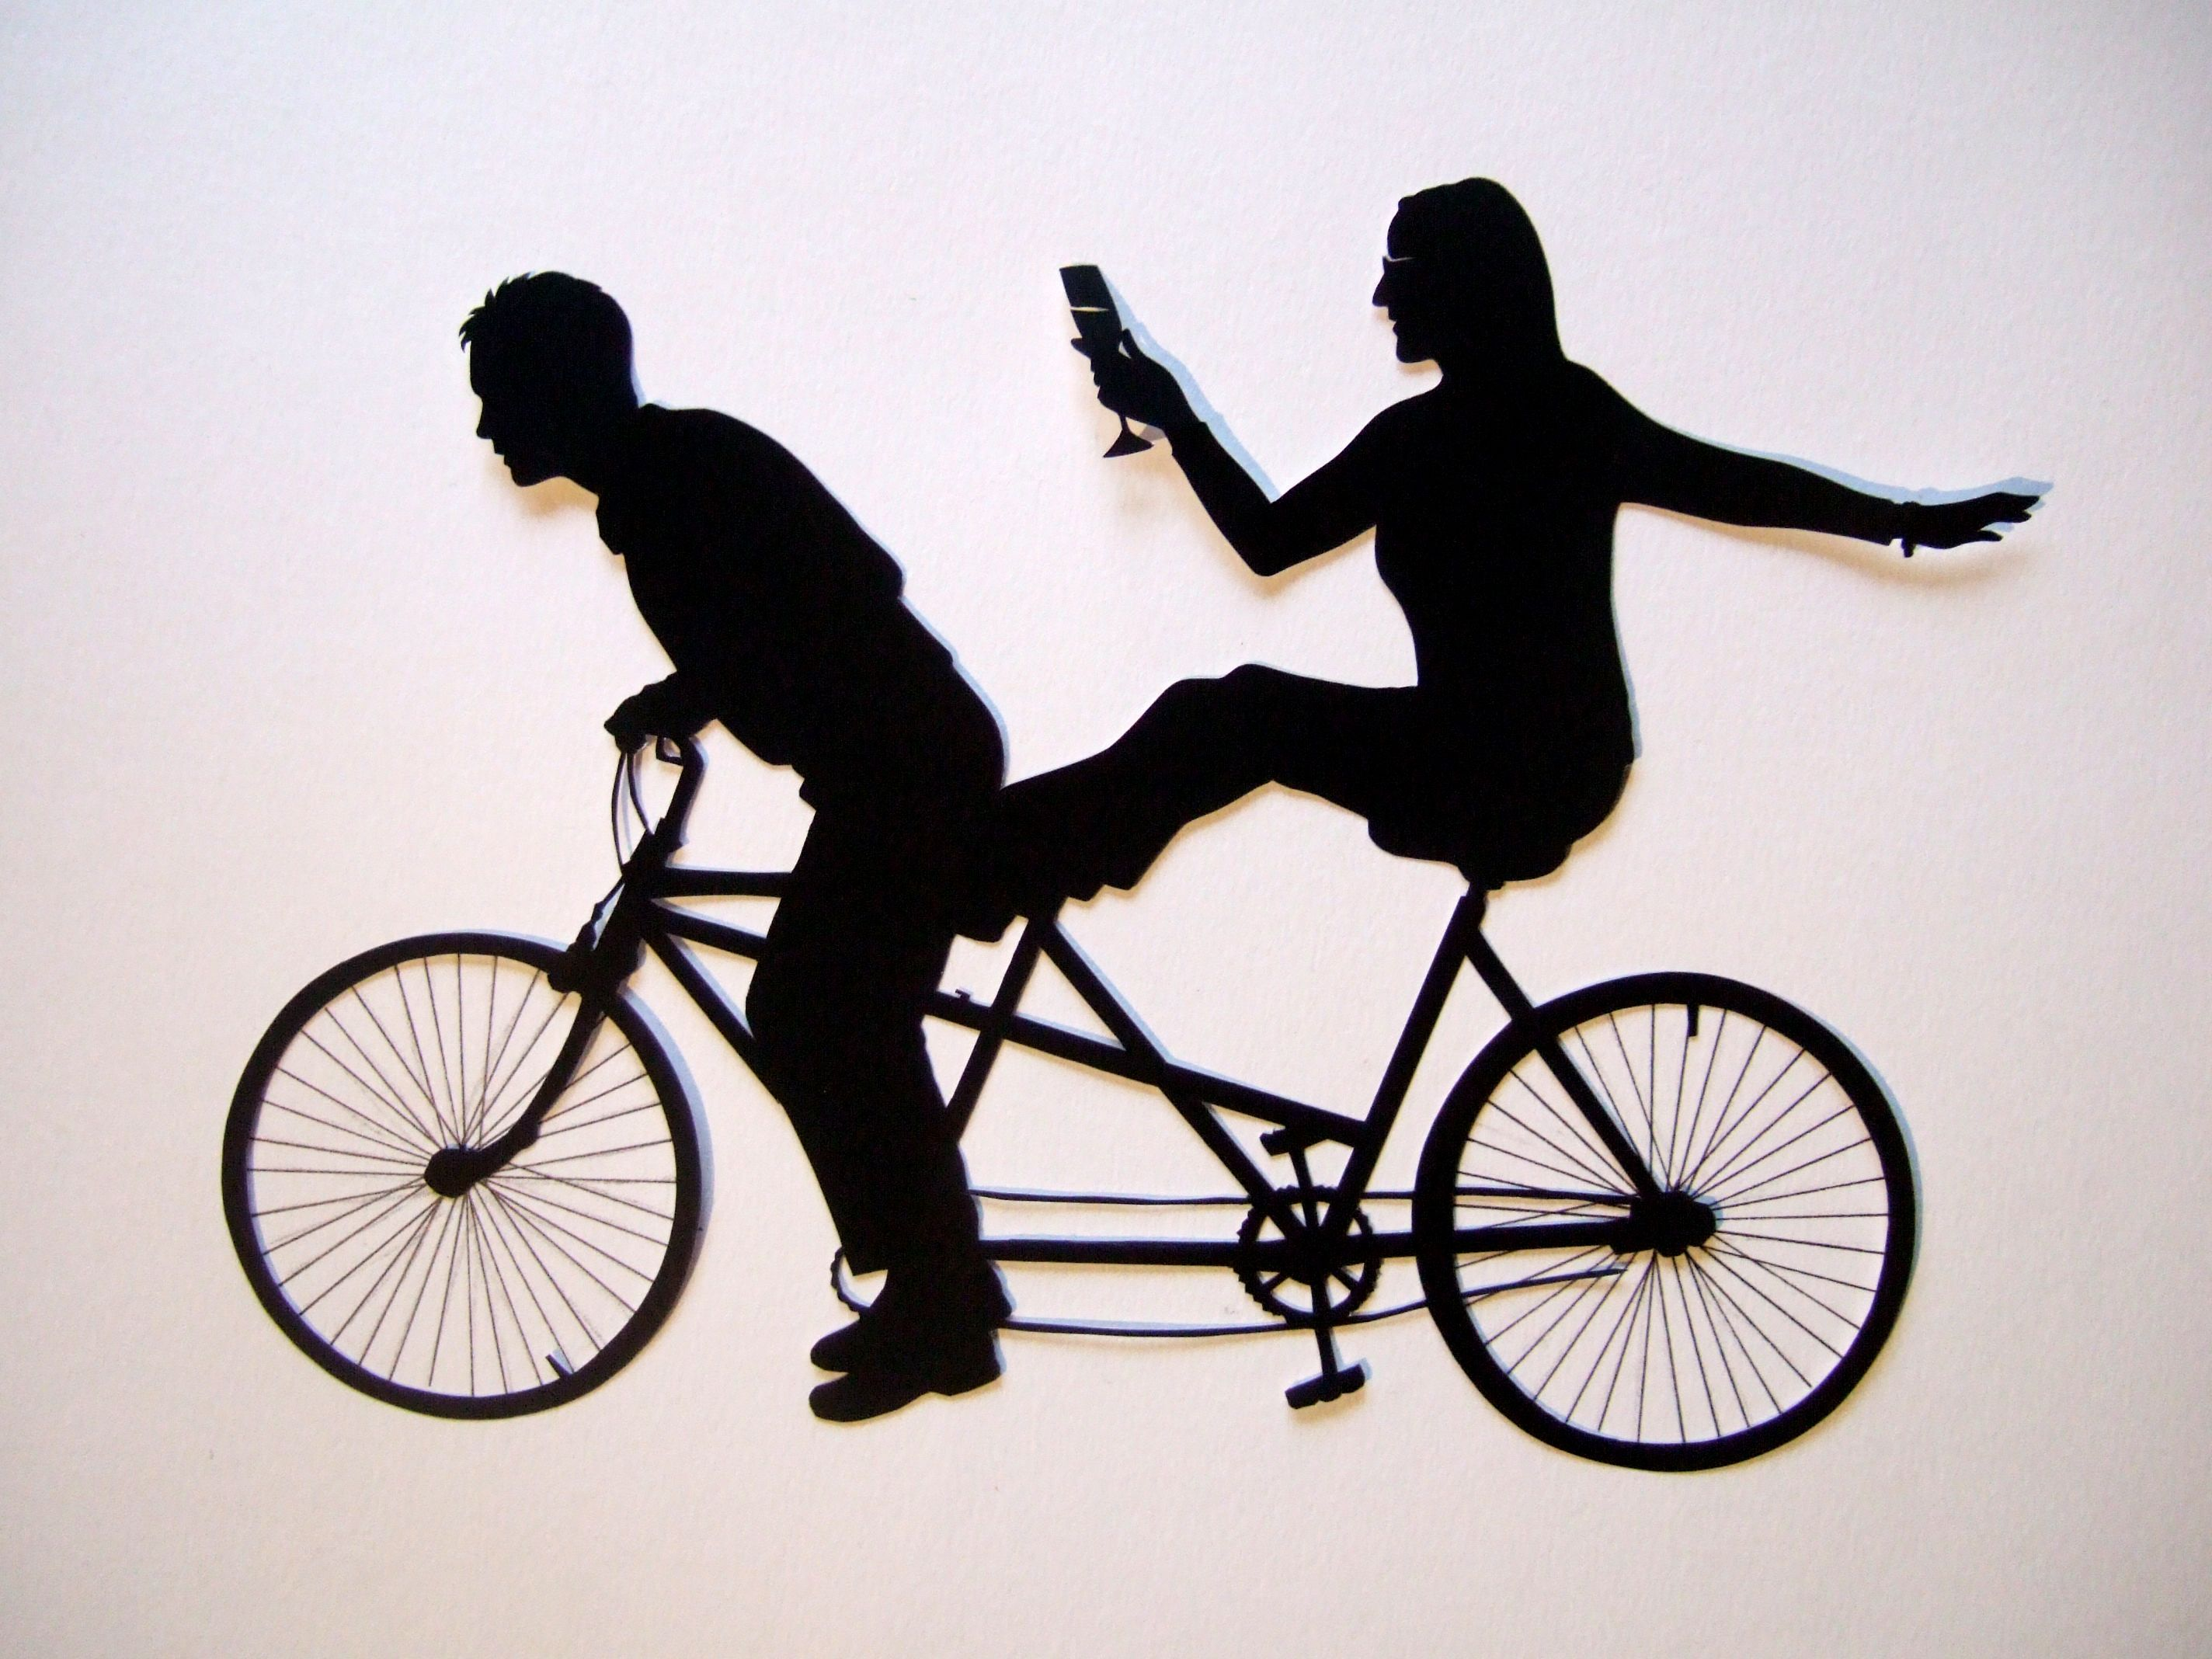 Tandem bicycle clipart clipart royalty free tandem mountain bike clipart - Google Search | Tandem ... clipart royalty free